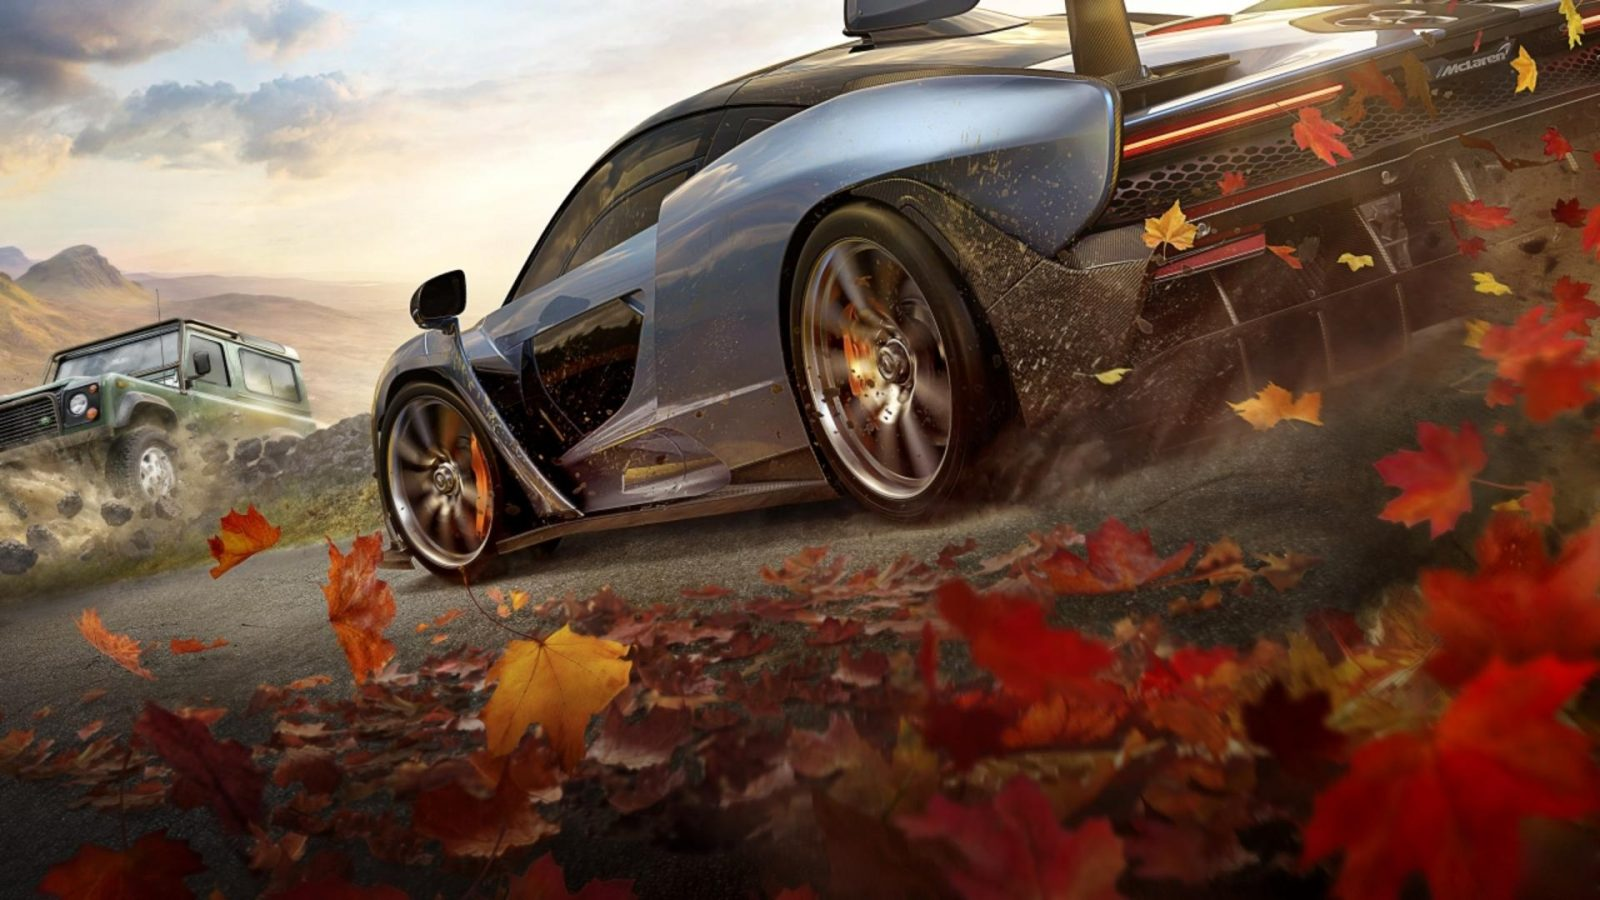 The New Battle Royale on the Streets is Forza Horizon 4's Eliminator